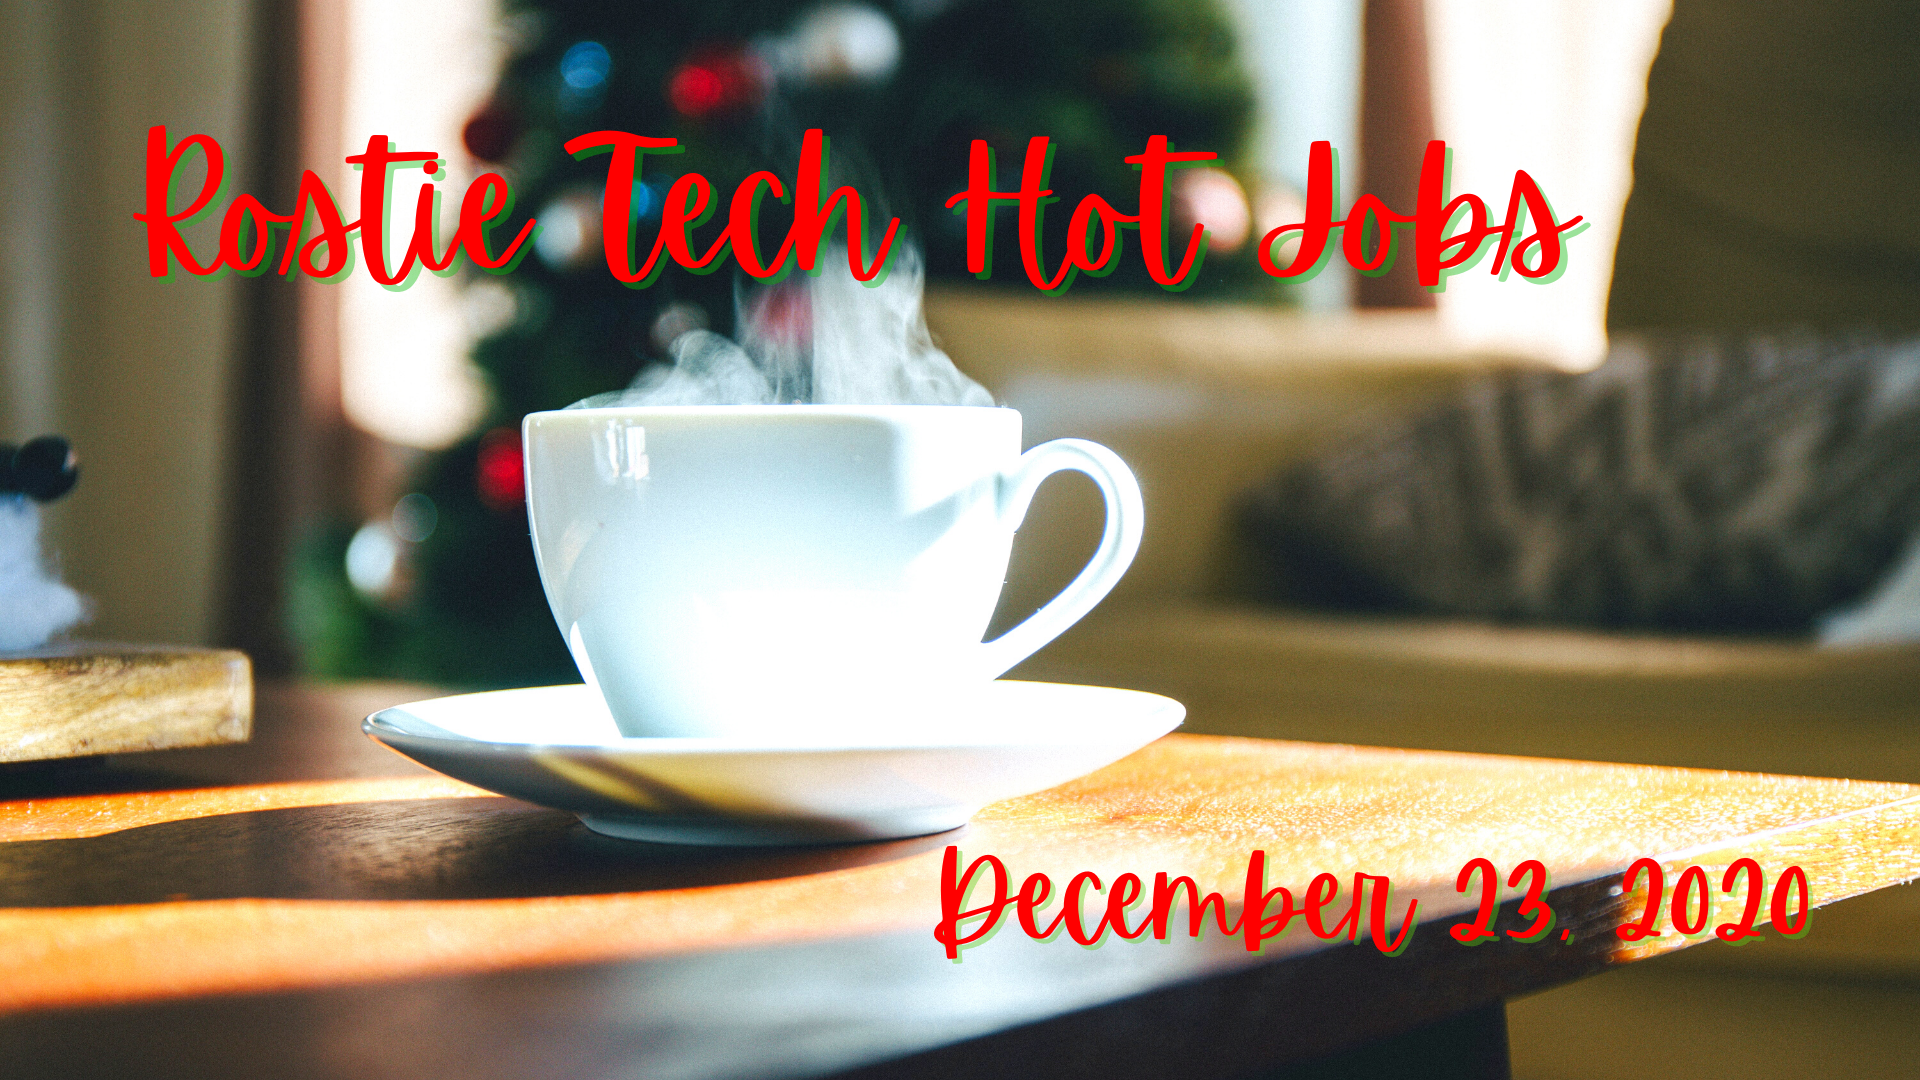 Rostie Tech Hot Jobs: December 23rd, 2020